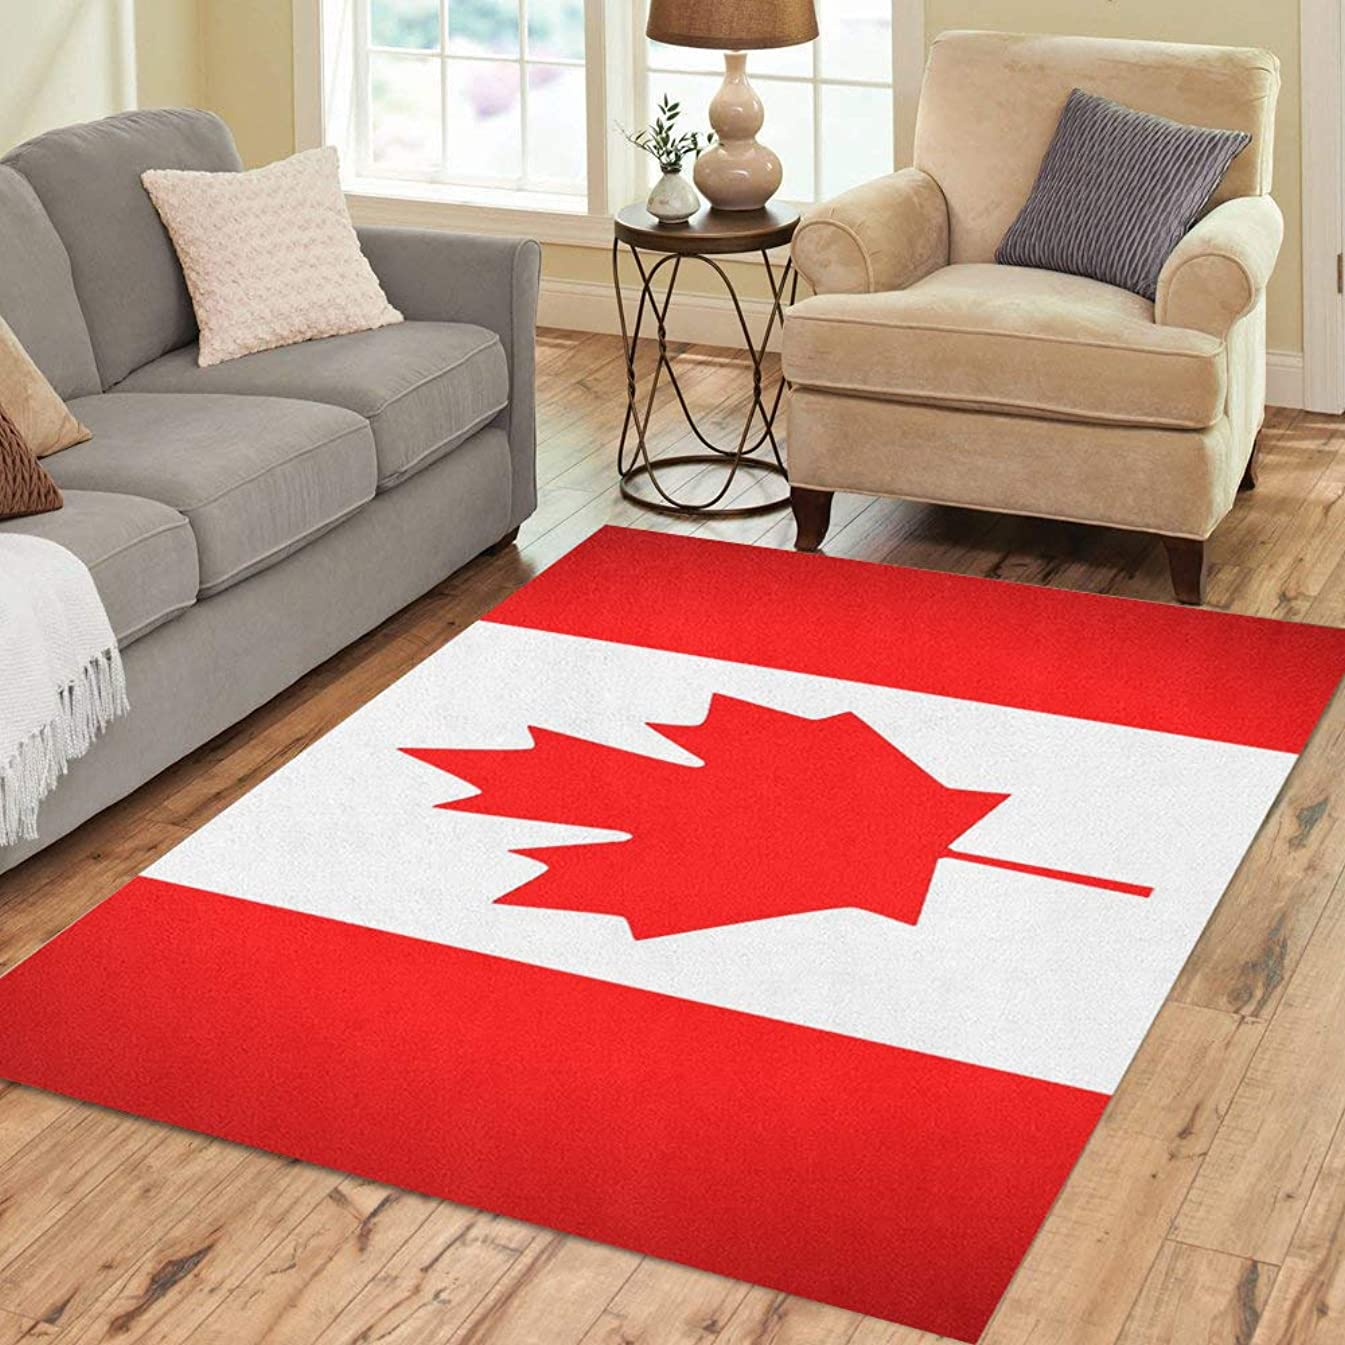 Pinbeam Area Rug Red Leaf Canada Flag Maple Canadian Quebec White Home Decor Floor Rug 5' x 7' Carpet